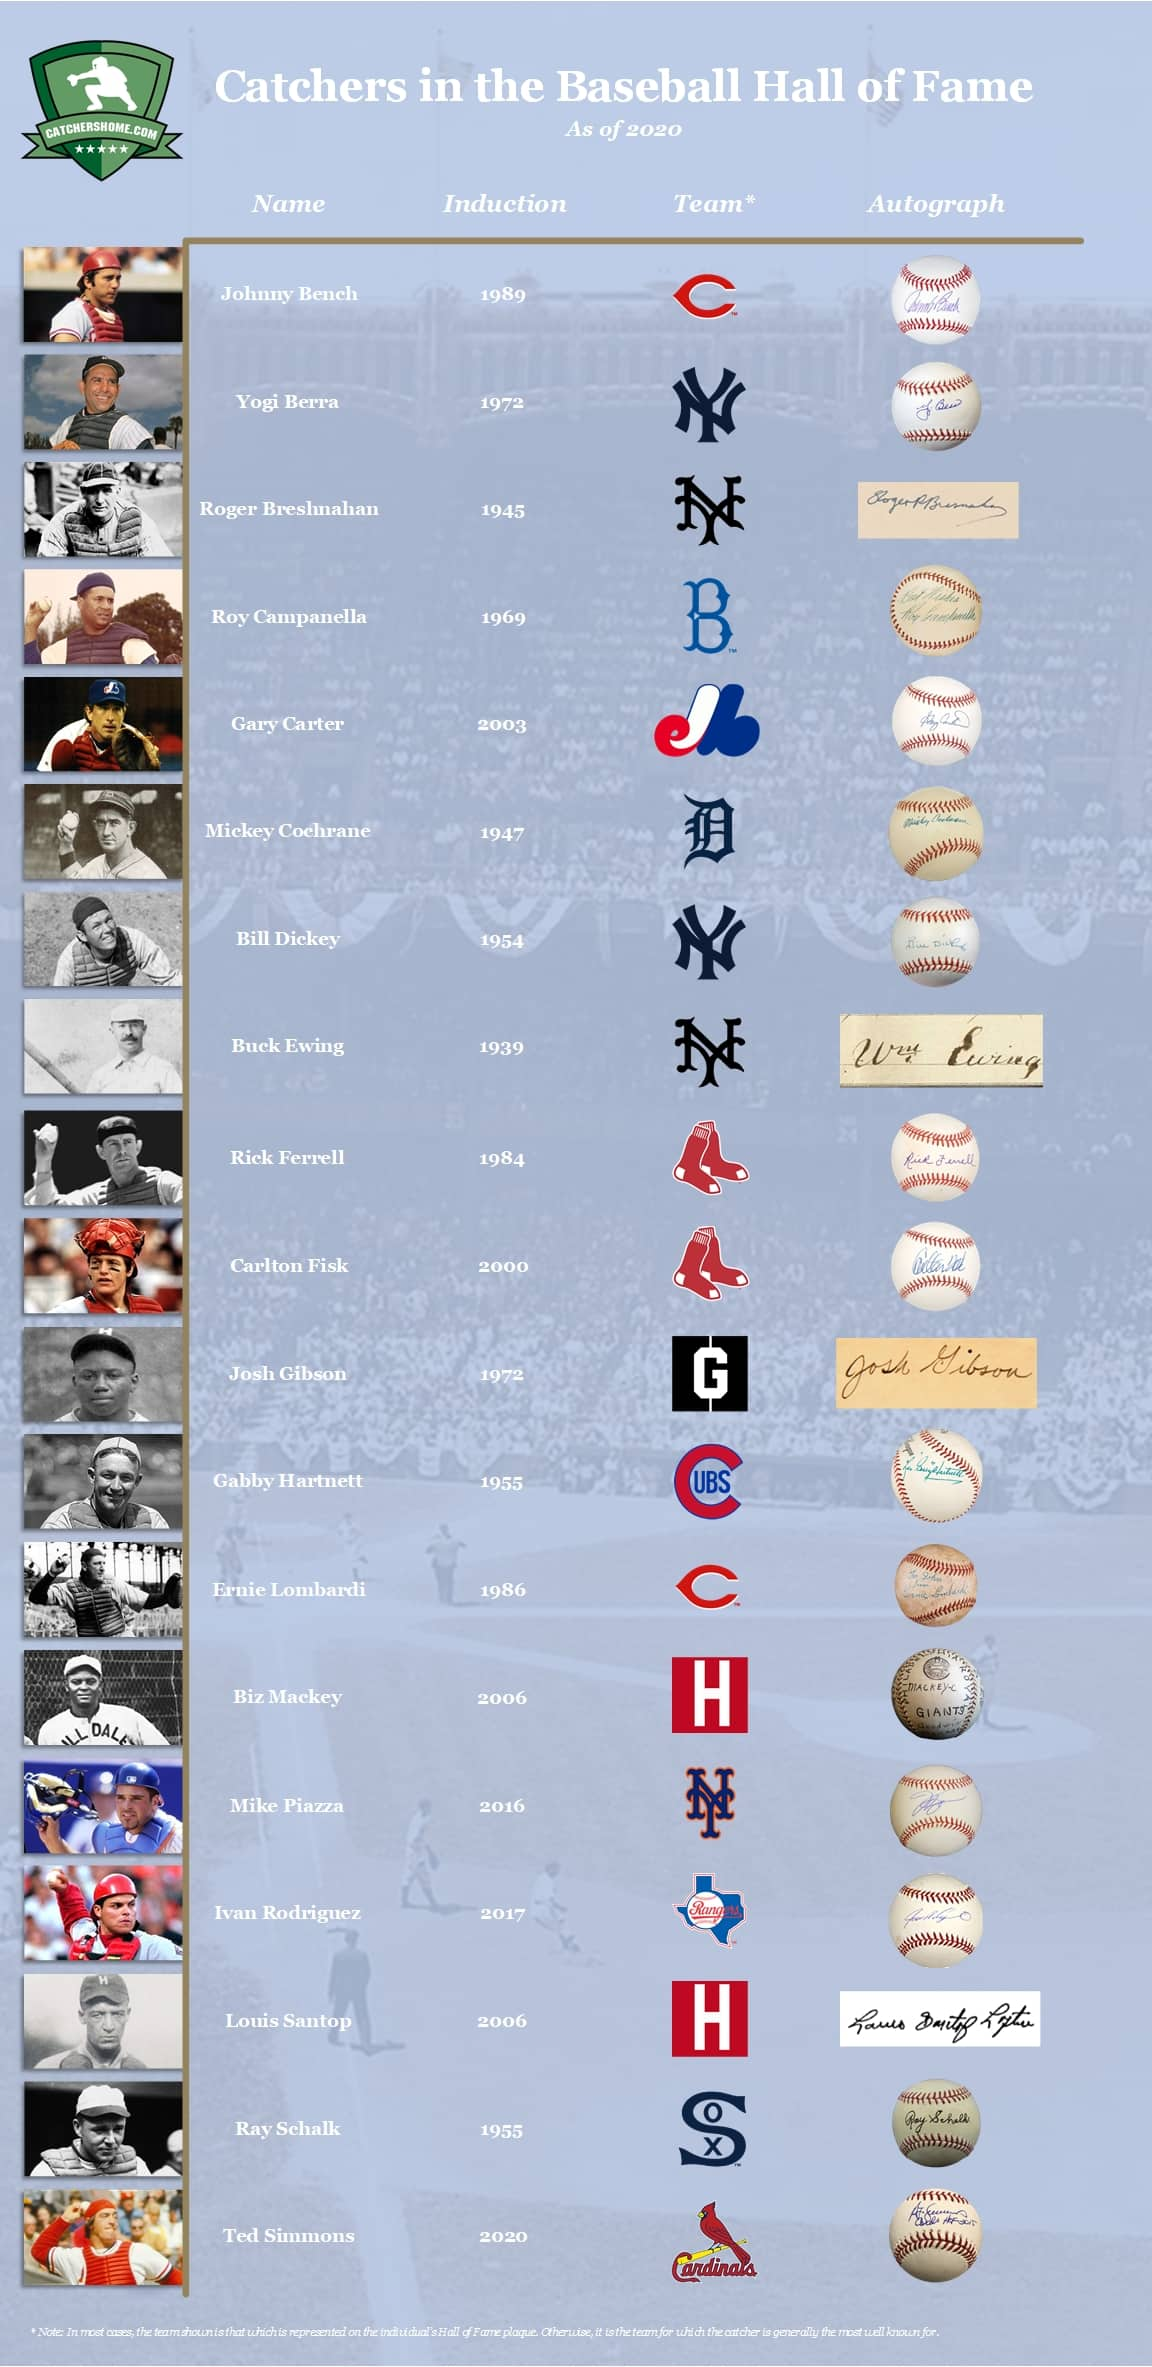 Baseball Catchers in the Hall of Fame. An infographic with pictures, information and autographs.